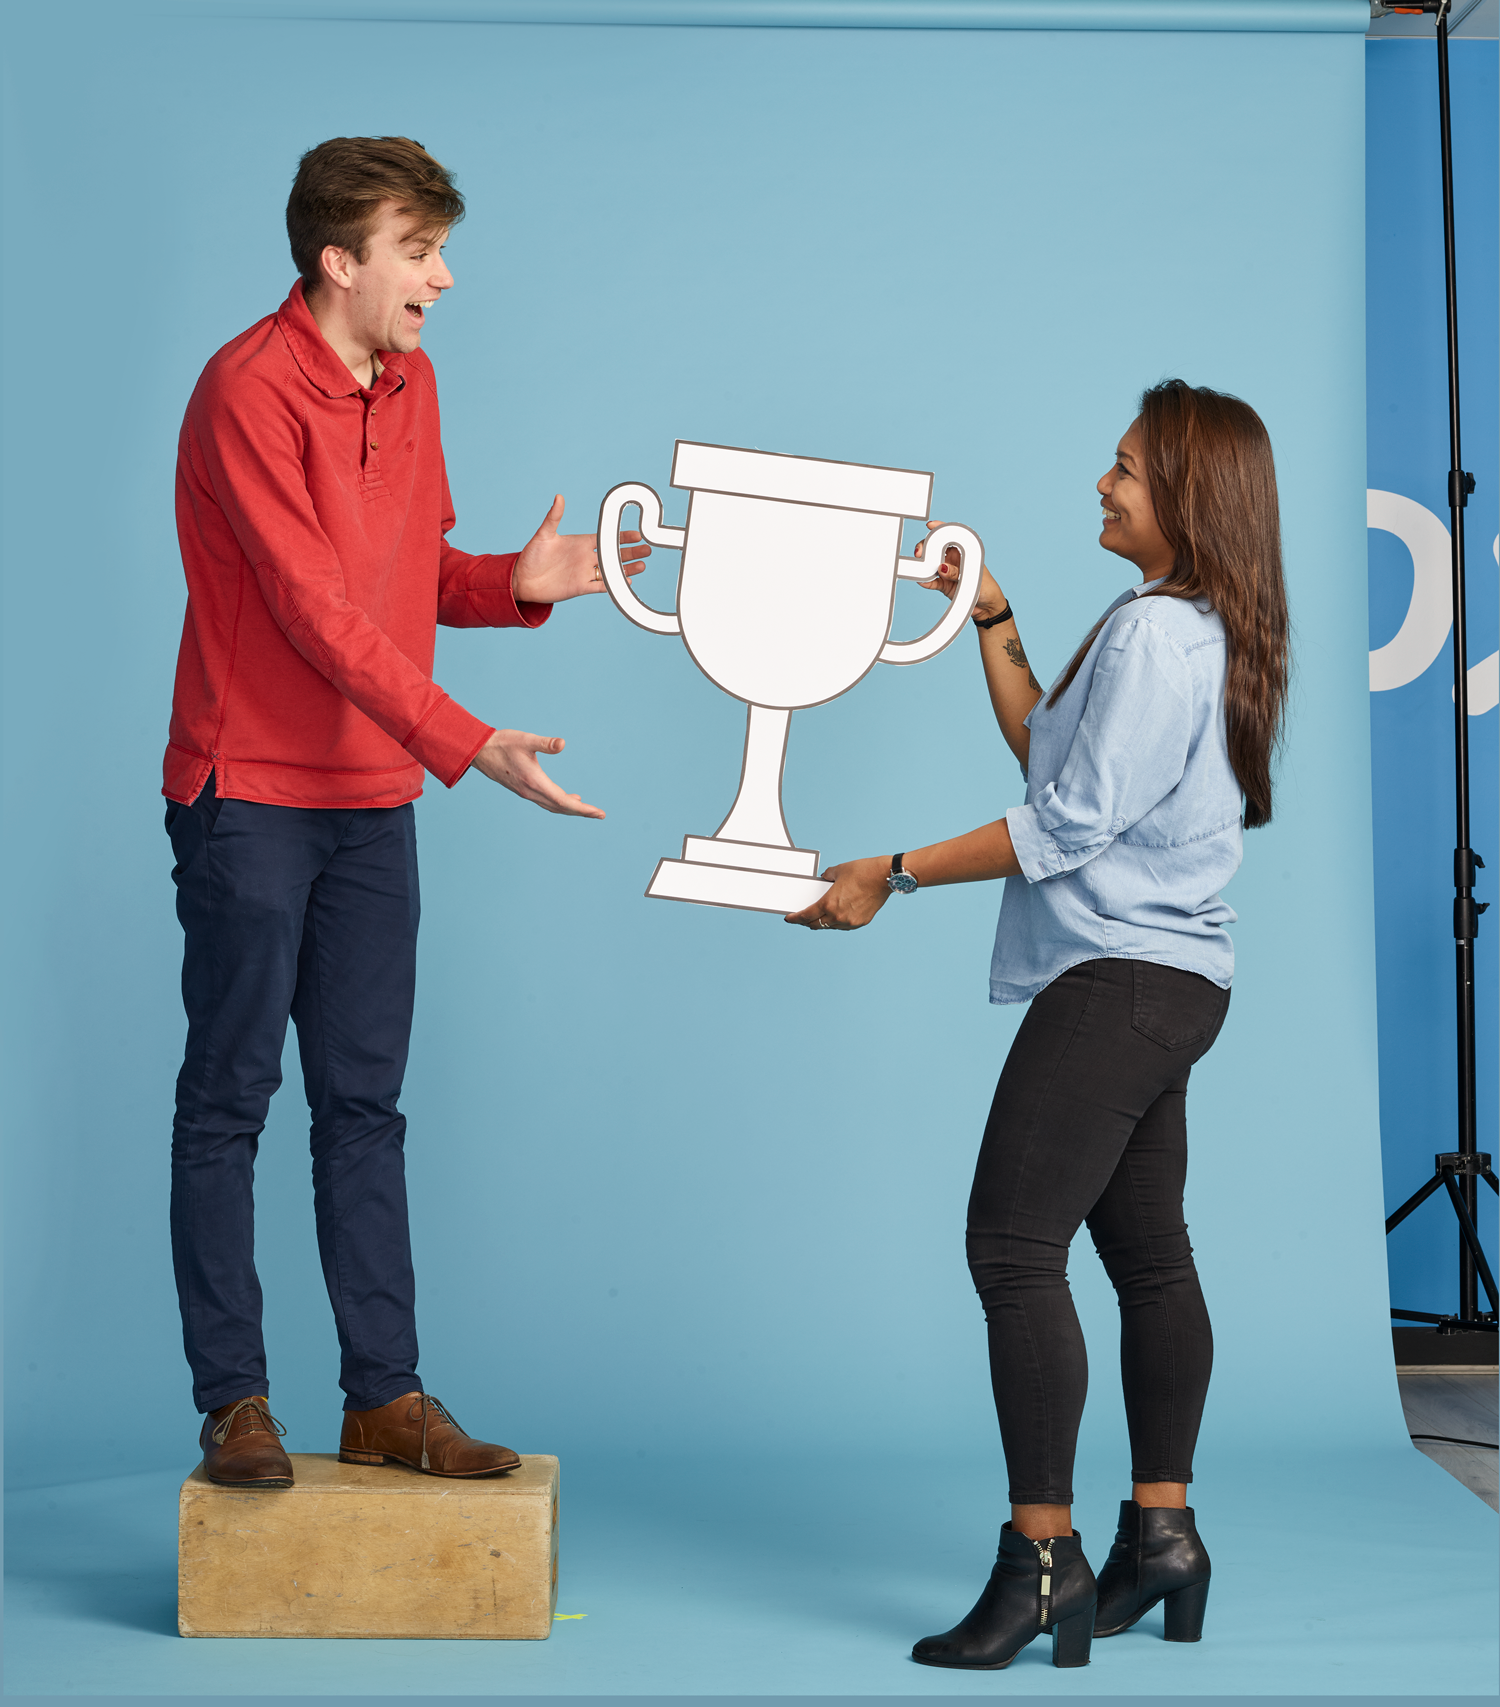 Amy-giving-trophy-to-Tim_raw.png